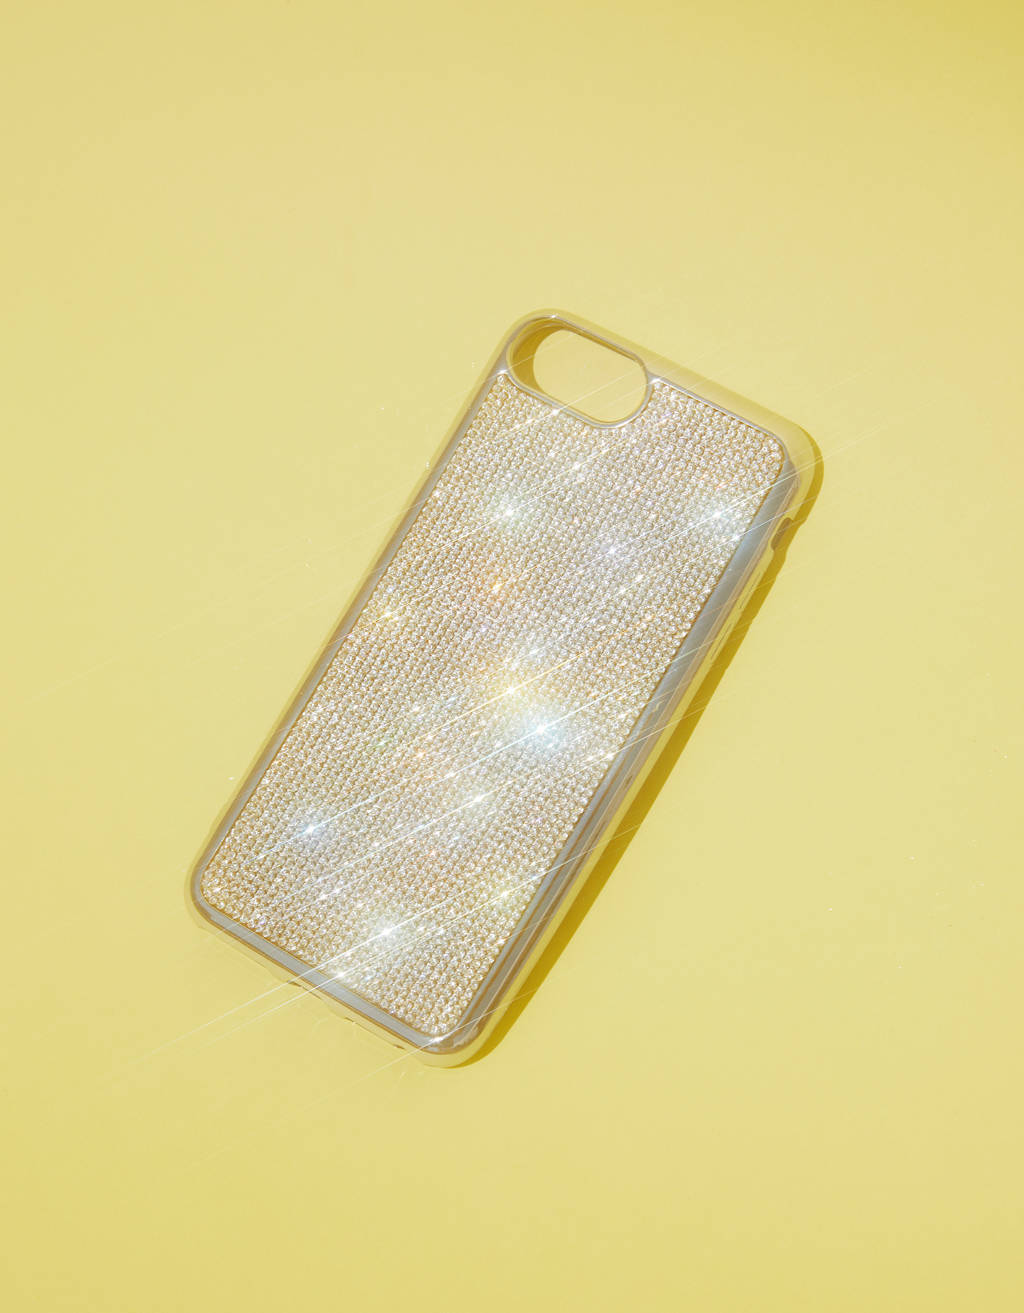 iPhone 6 Plus / 7 Plus / 8 Plus case with rhinestones